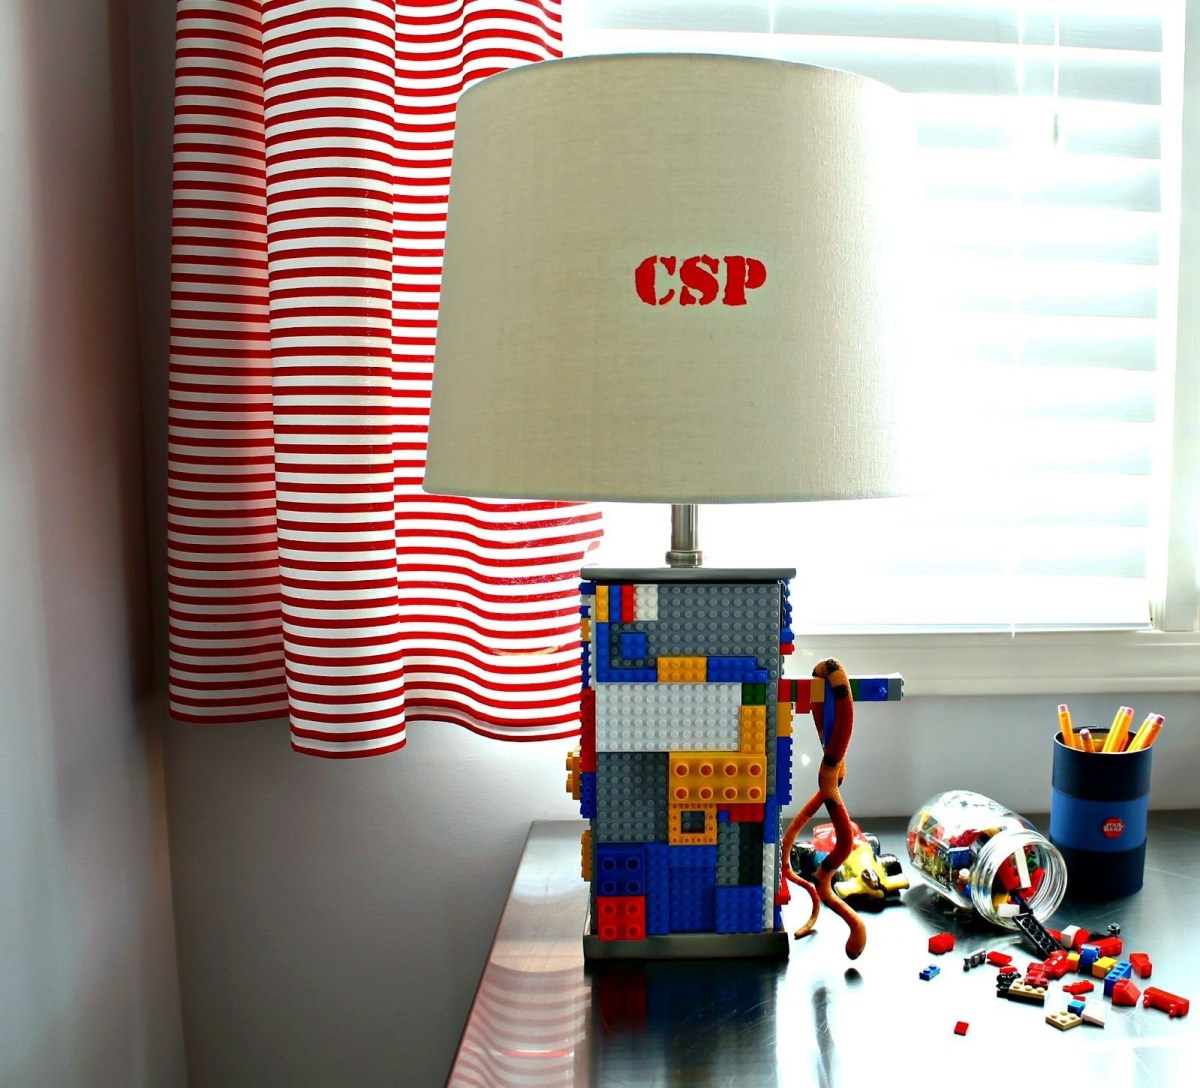 Lego lamp DIY Lamp Ideas To Revamp Your Old Lamp Into The Most Captivating Lamp Ever